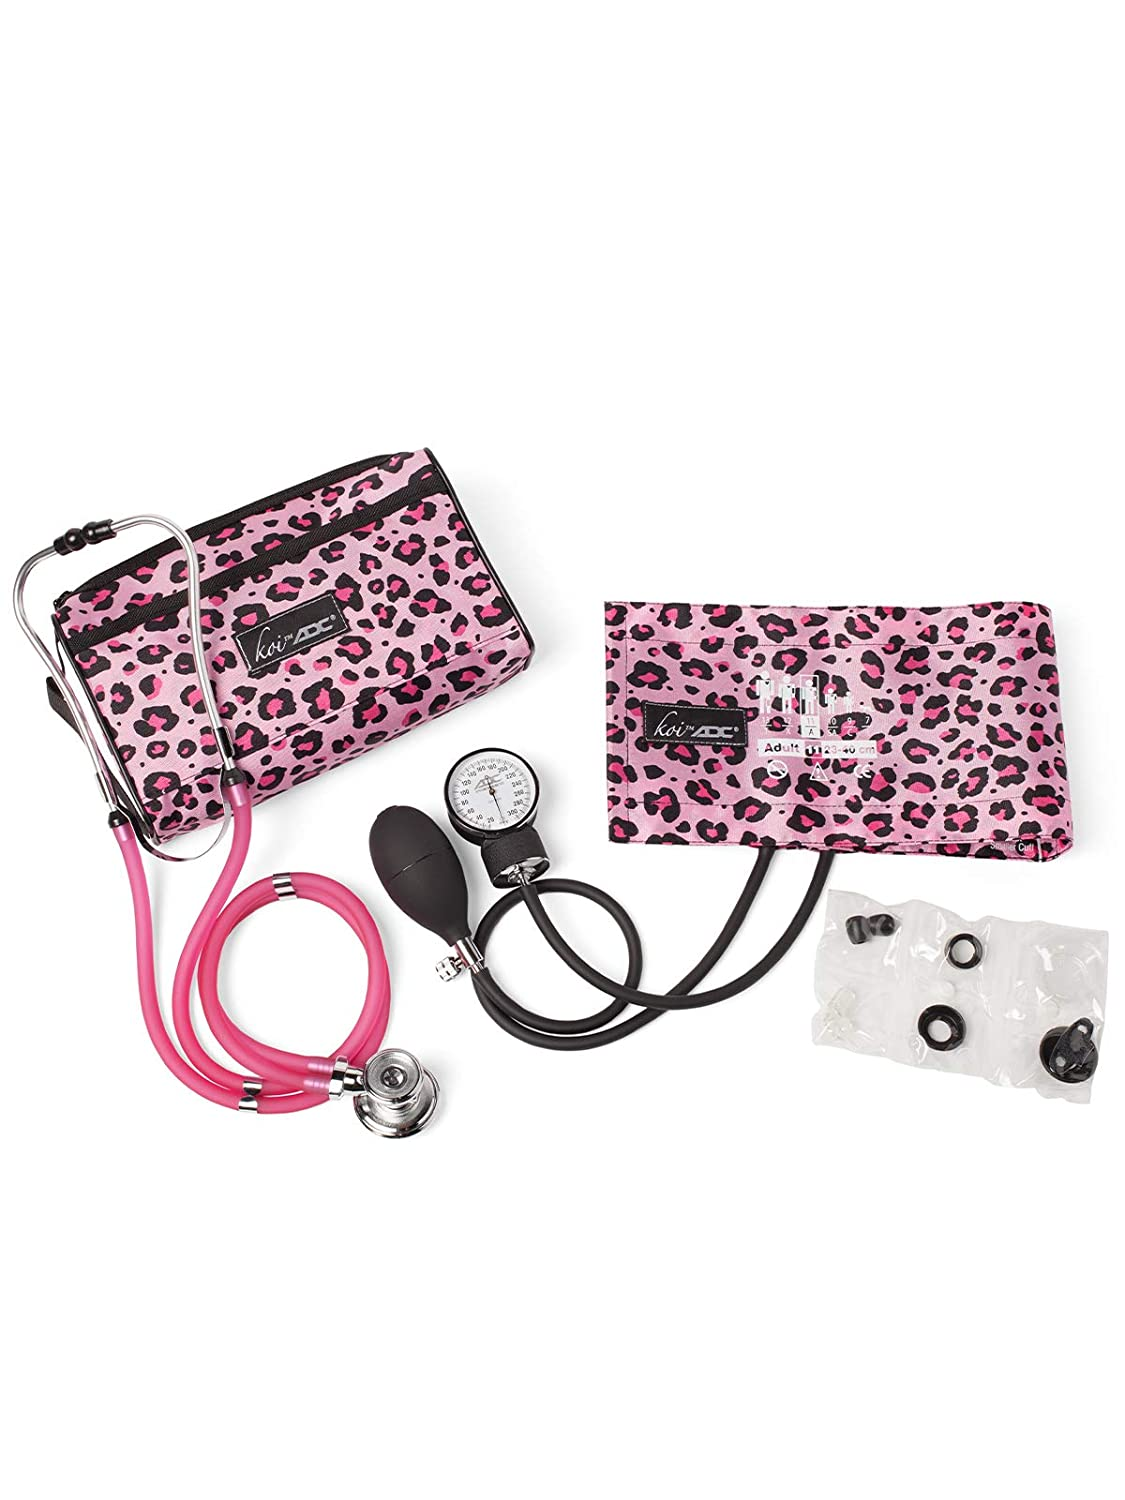 Koi by ADC Blood Pressure Cuff and Stethoscope Combination Kit Pink Cheetah